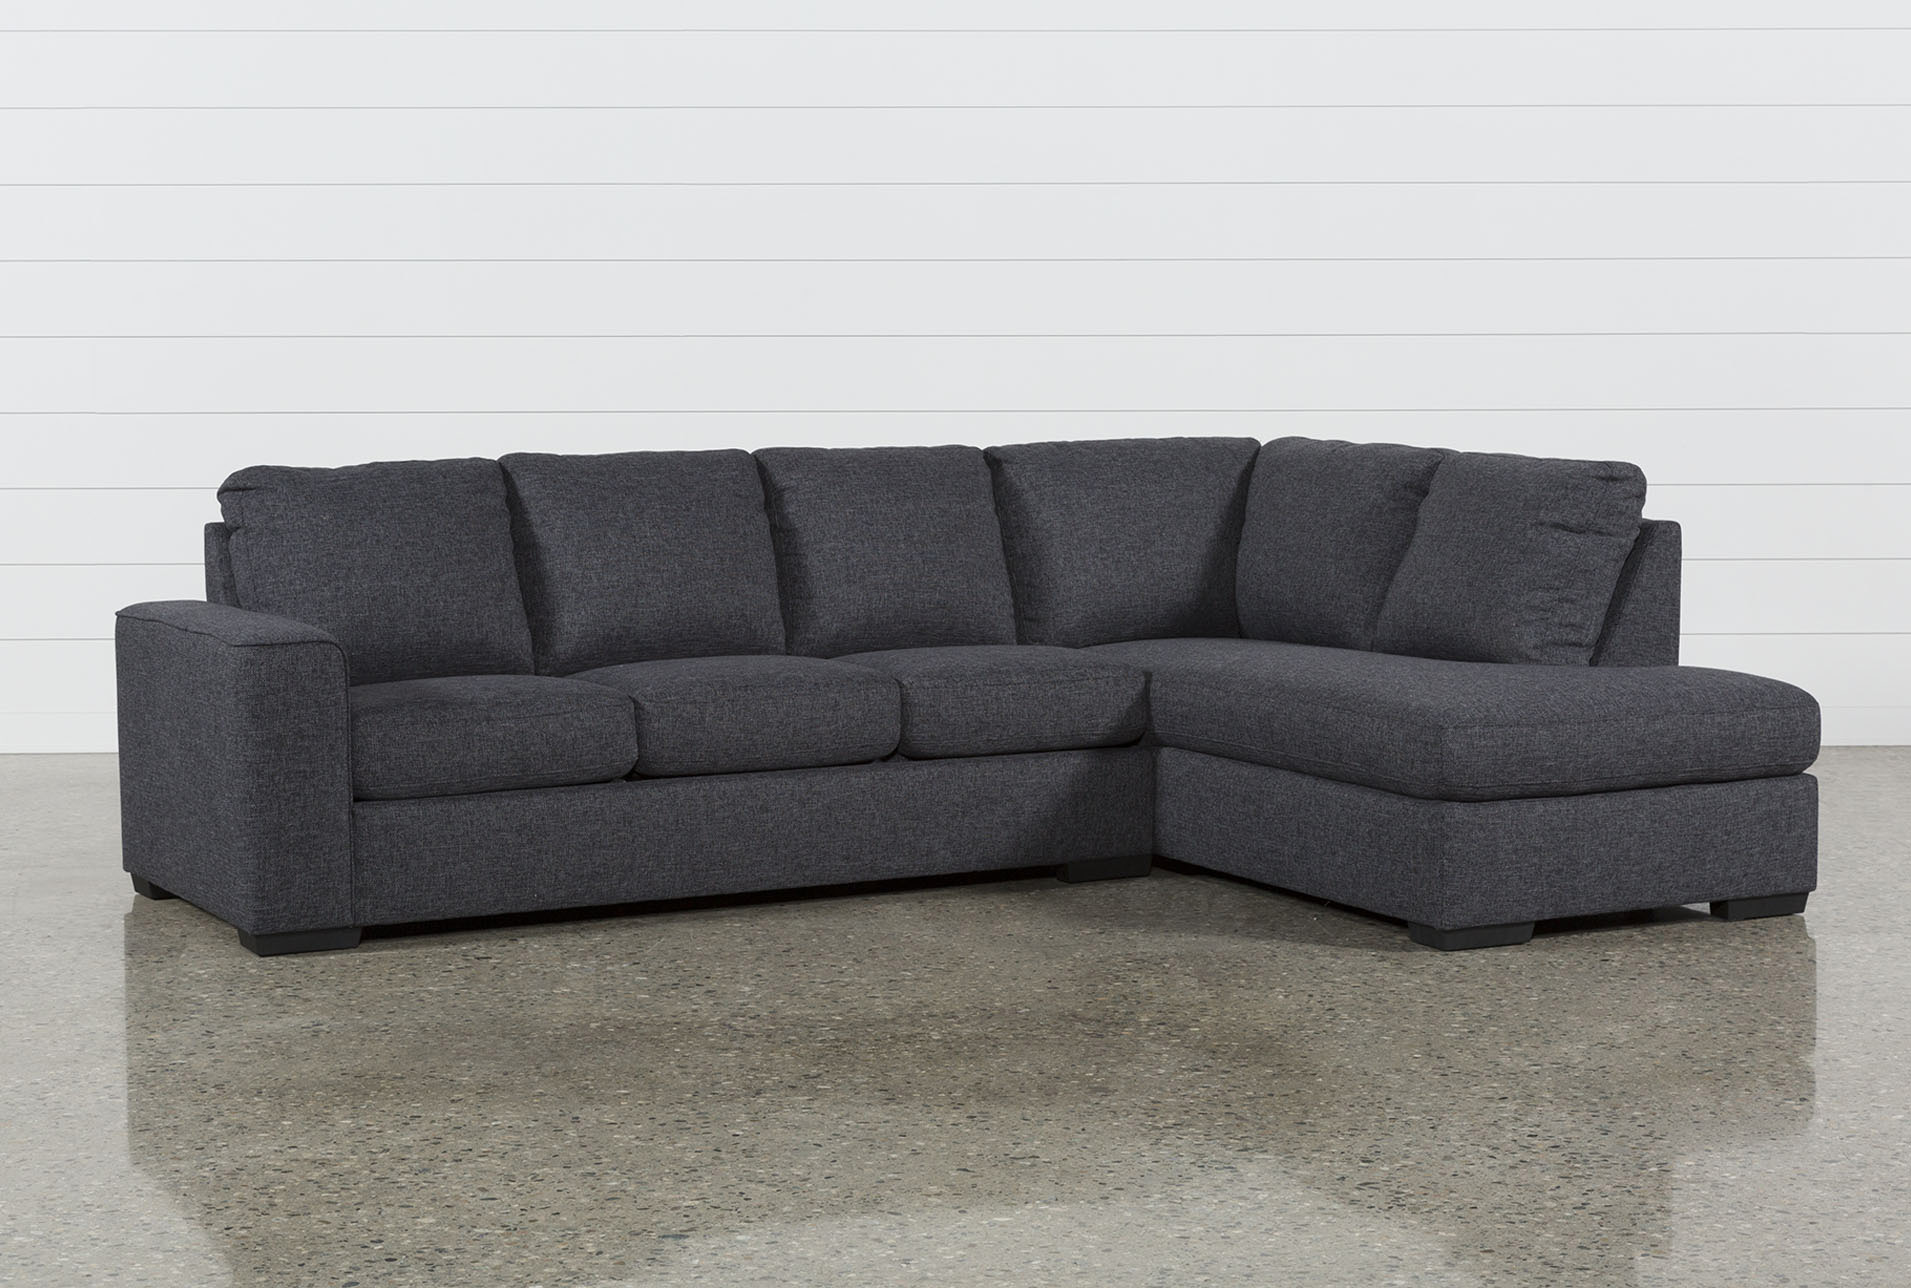 Lucy Dark Grey 2 Piece Sleeper Sectional W/Raf Chaise